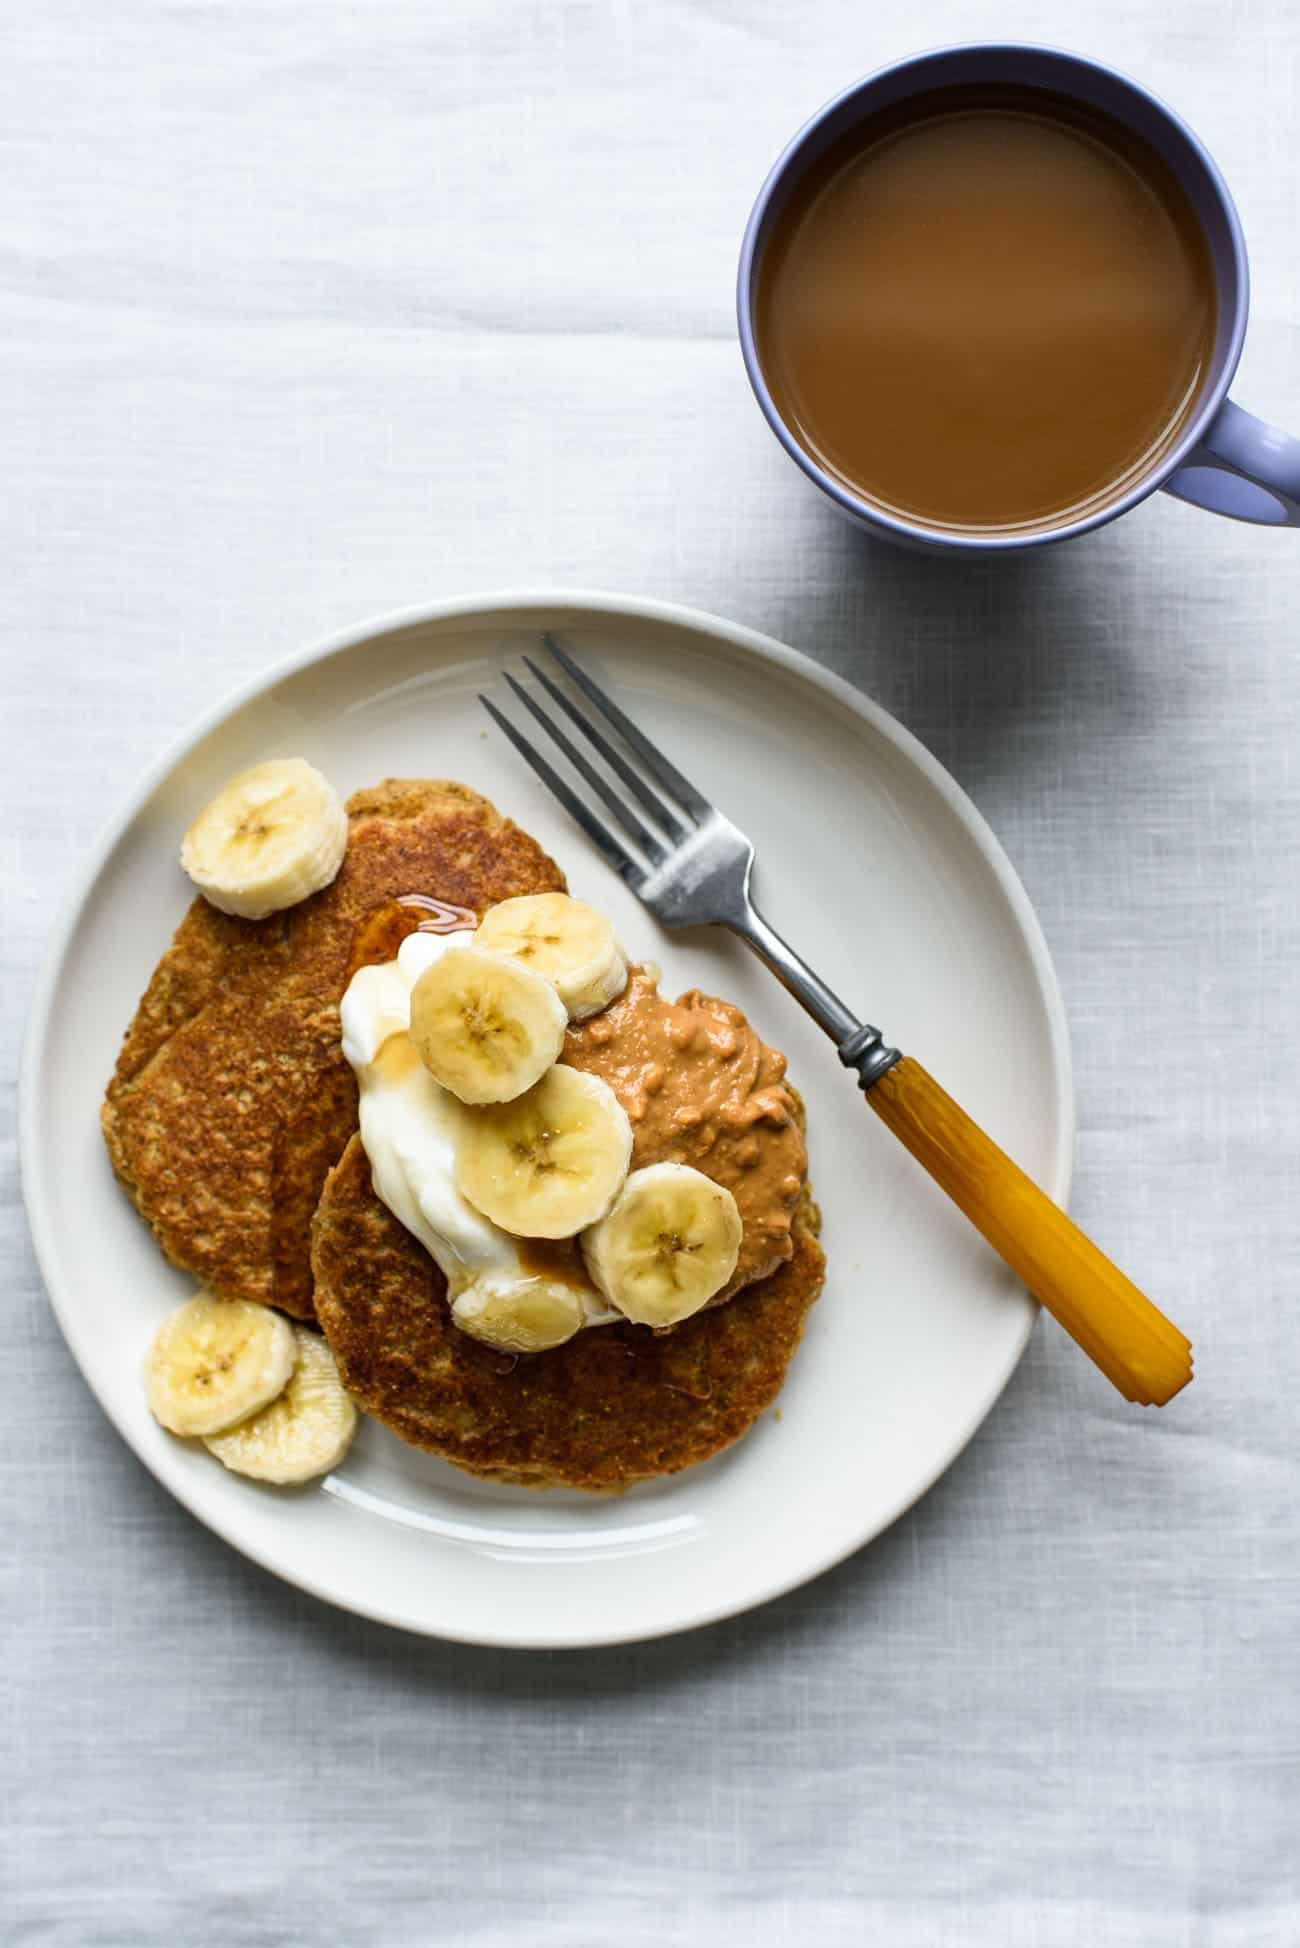 Vegan cornmeal pancakes topped with yogurt, bananas, and peanut butter on a white plate next to a cup of coffee